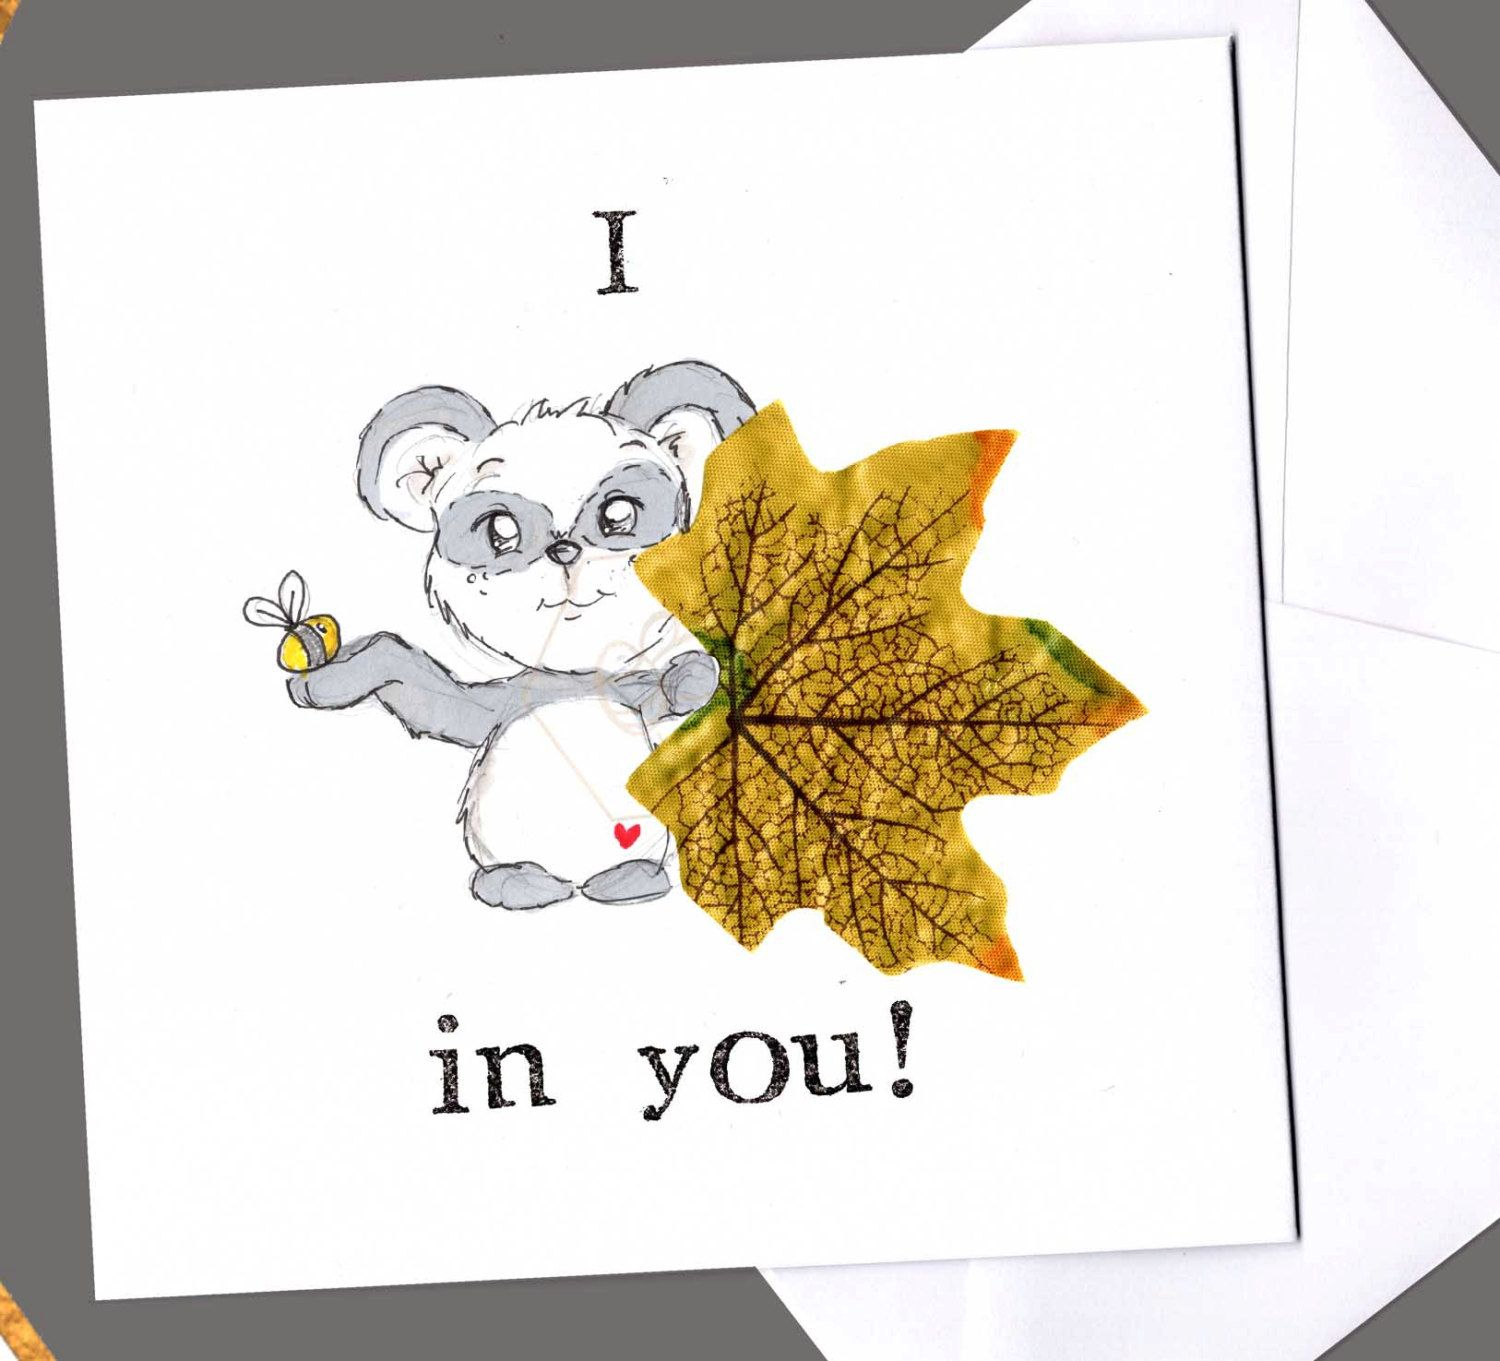 Good Luck Quotes For Board Exams: I Bee Leaf In You Card, I Believe In You, Good Luck, Pun